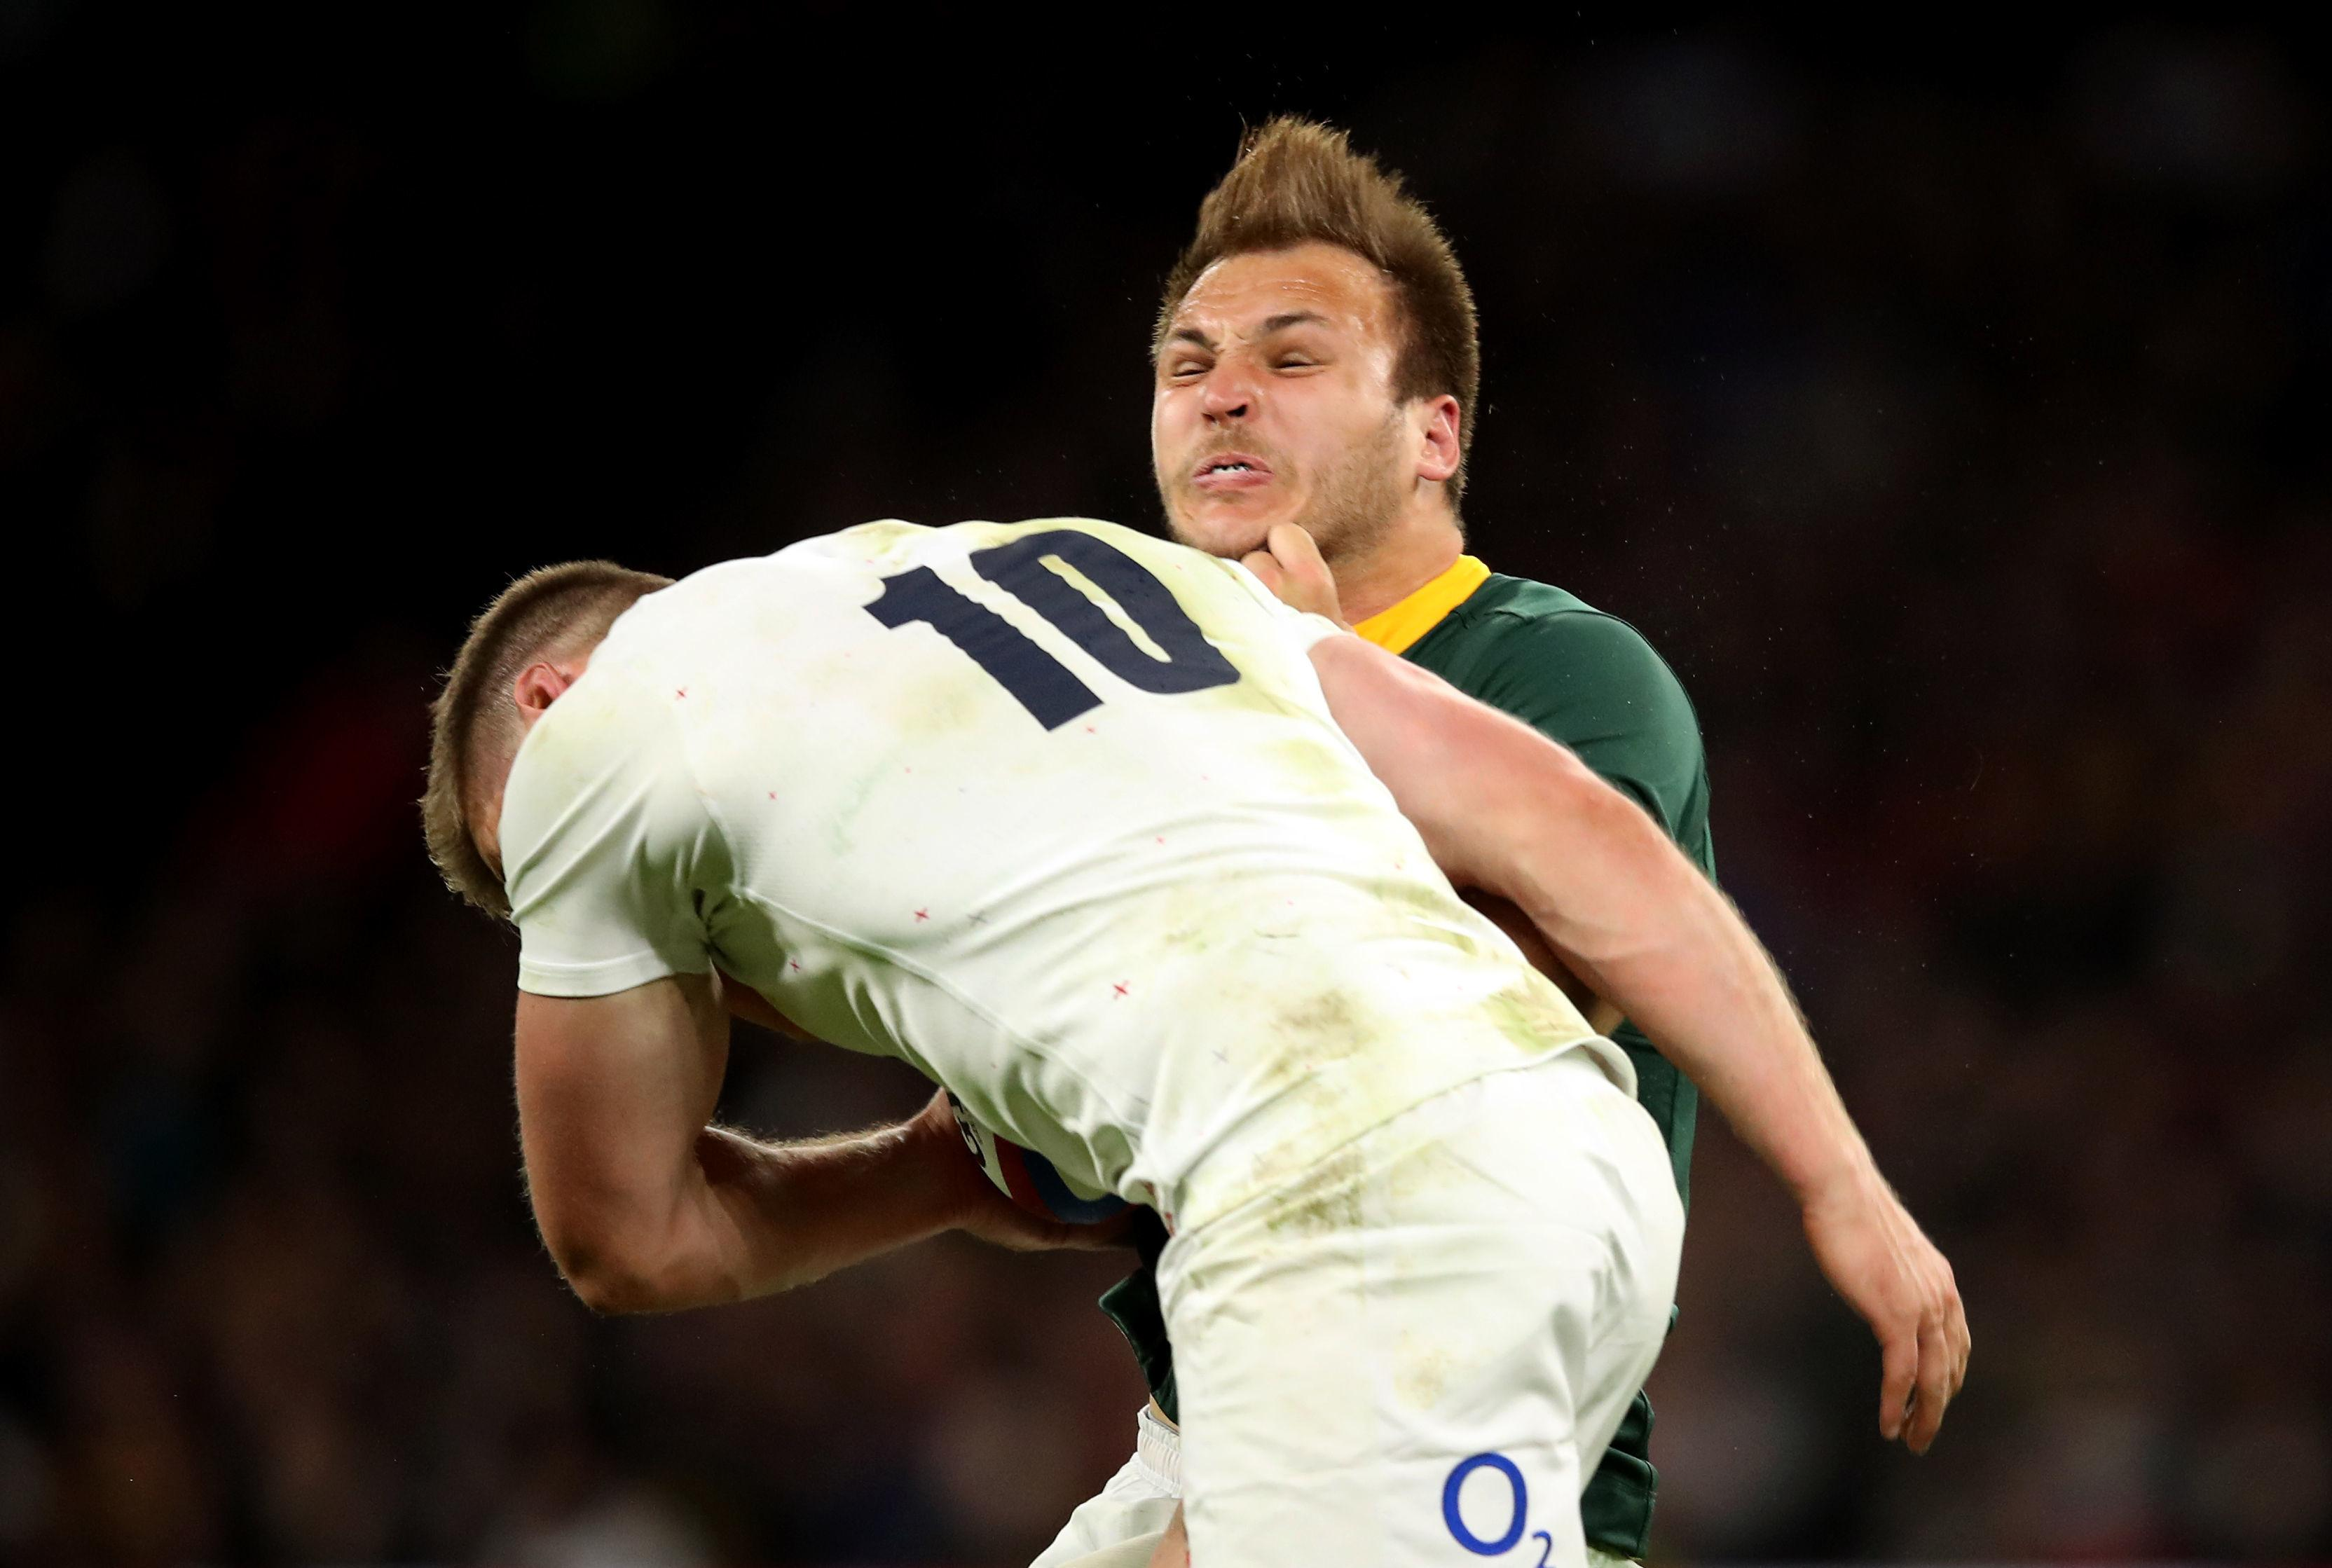 Owen Farrell has been cleared of an illegal tackle for his hit on Andre Esterhuizen